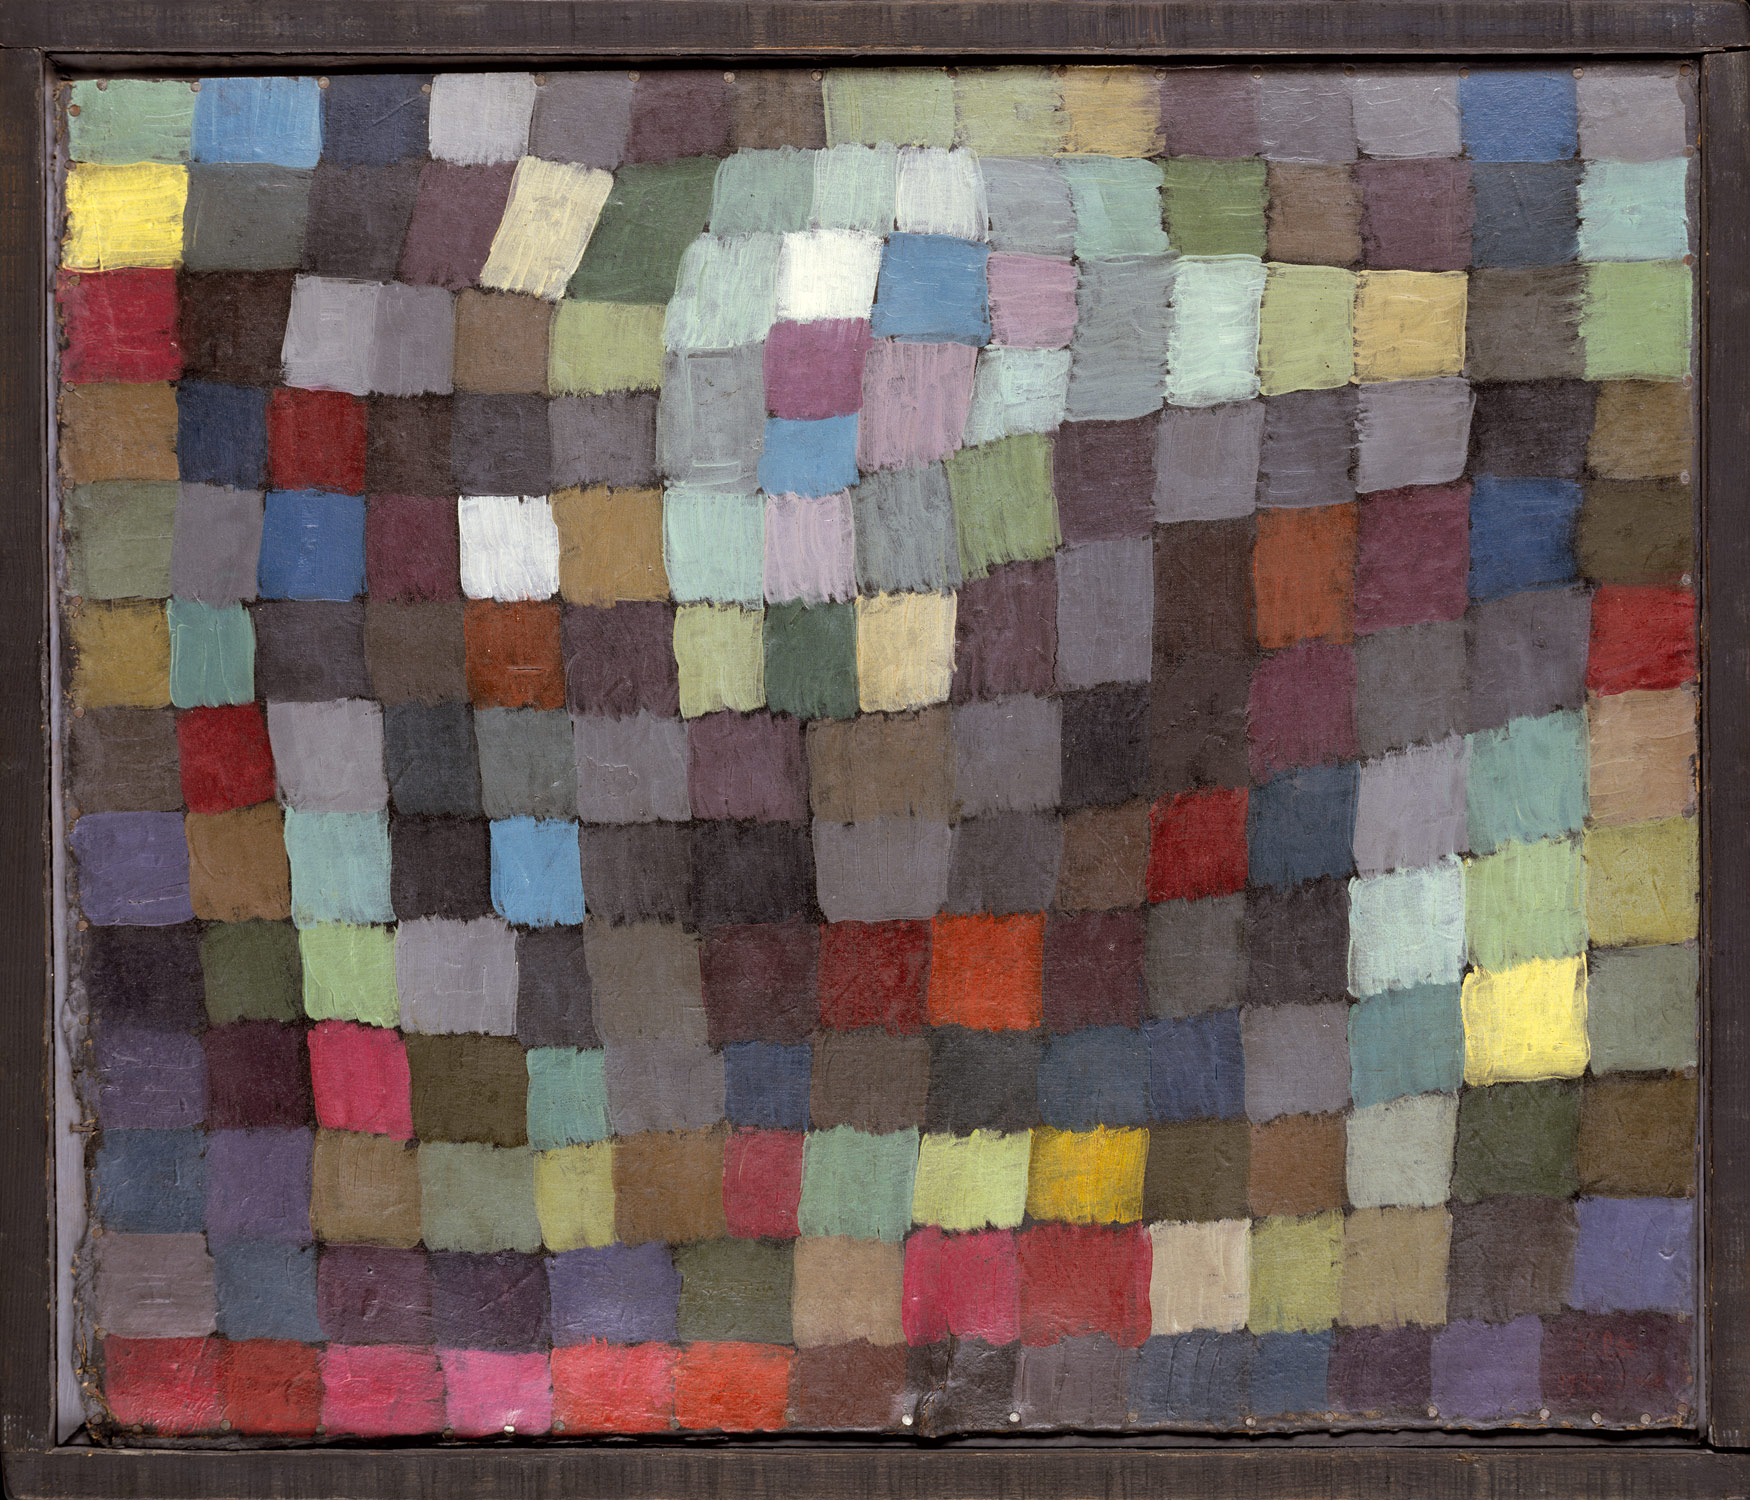 paul klee essay heilbrunn timeline of art history picture